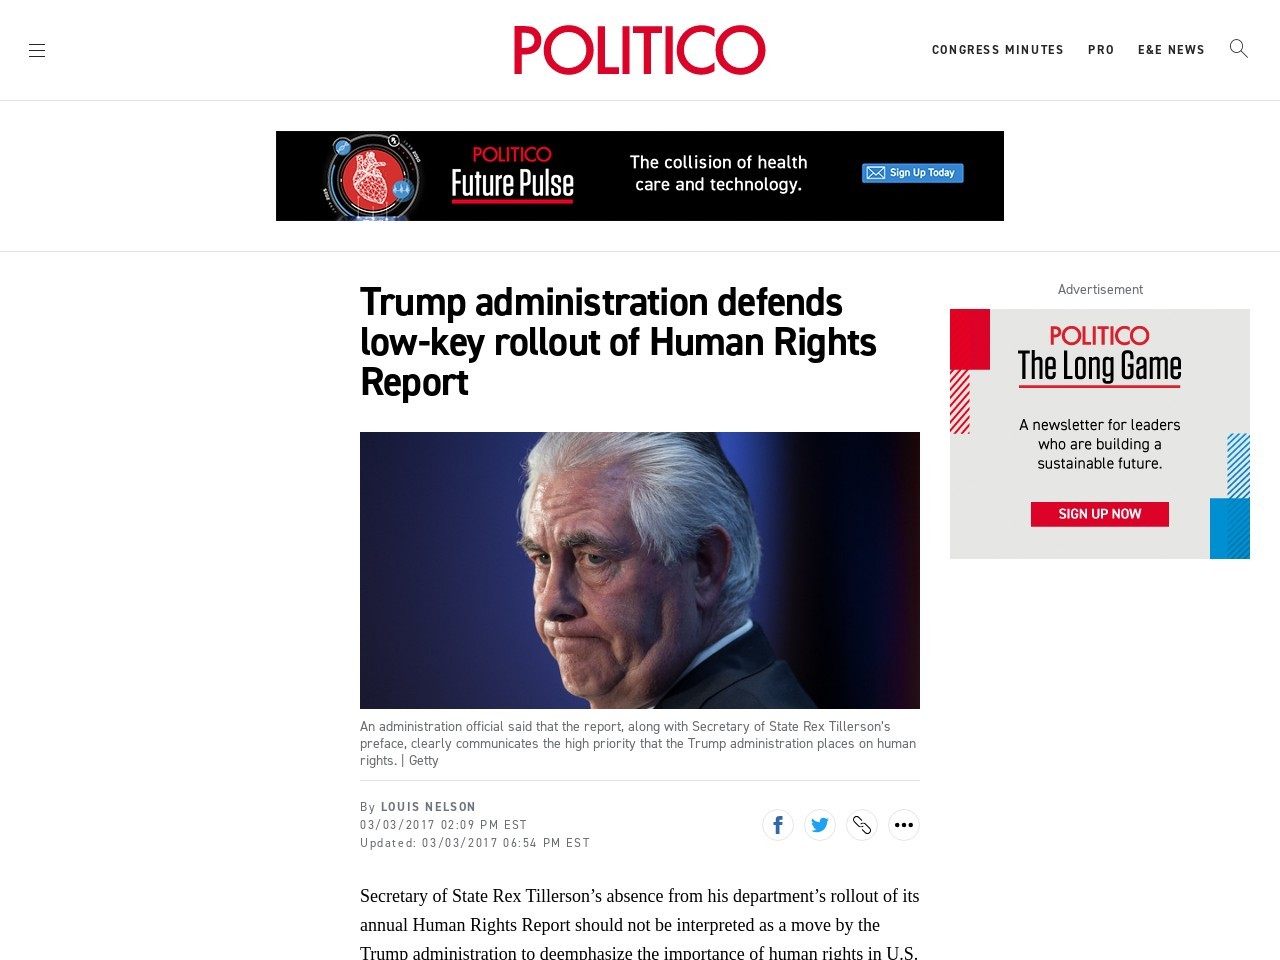 Trump administration defends low-key rollout of Human Rights Report